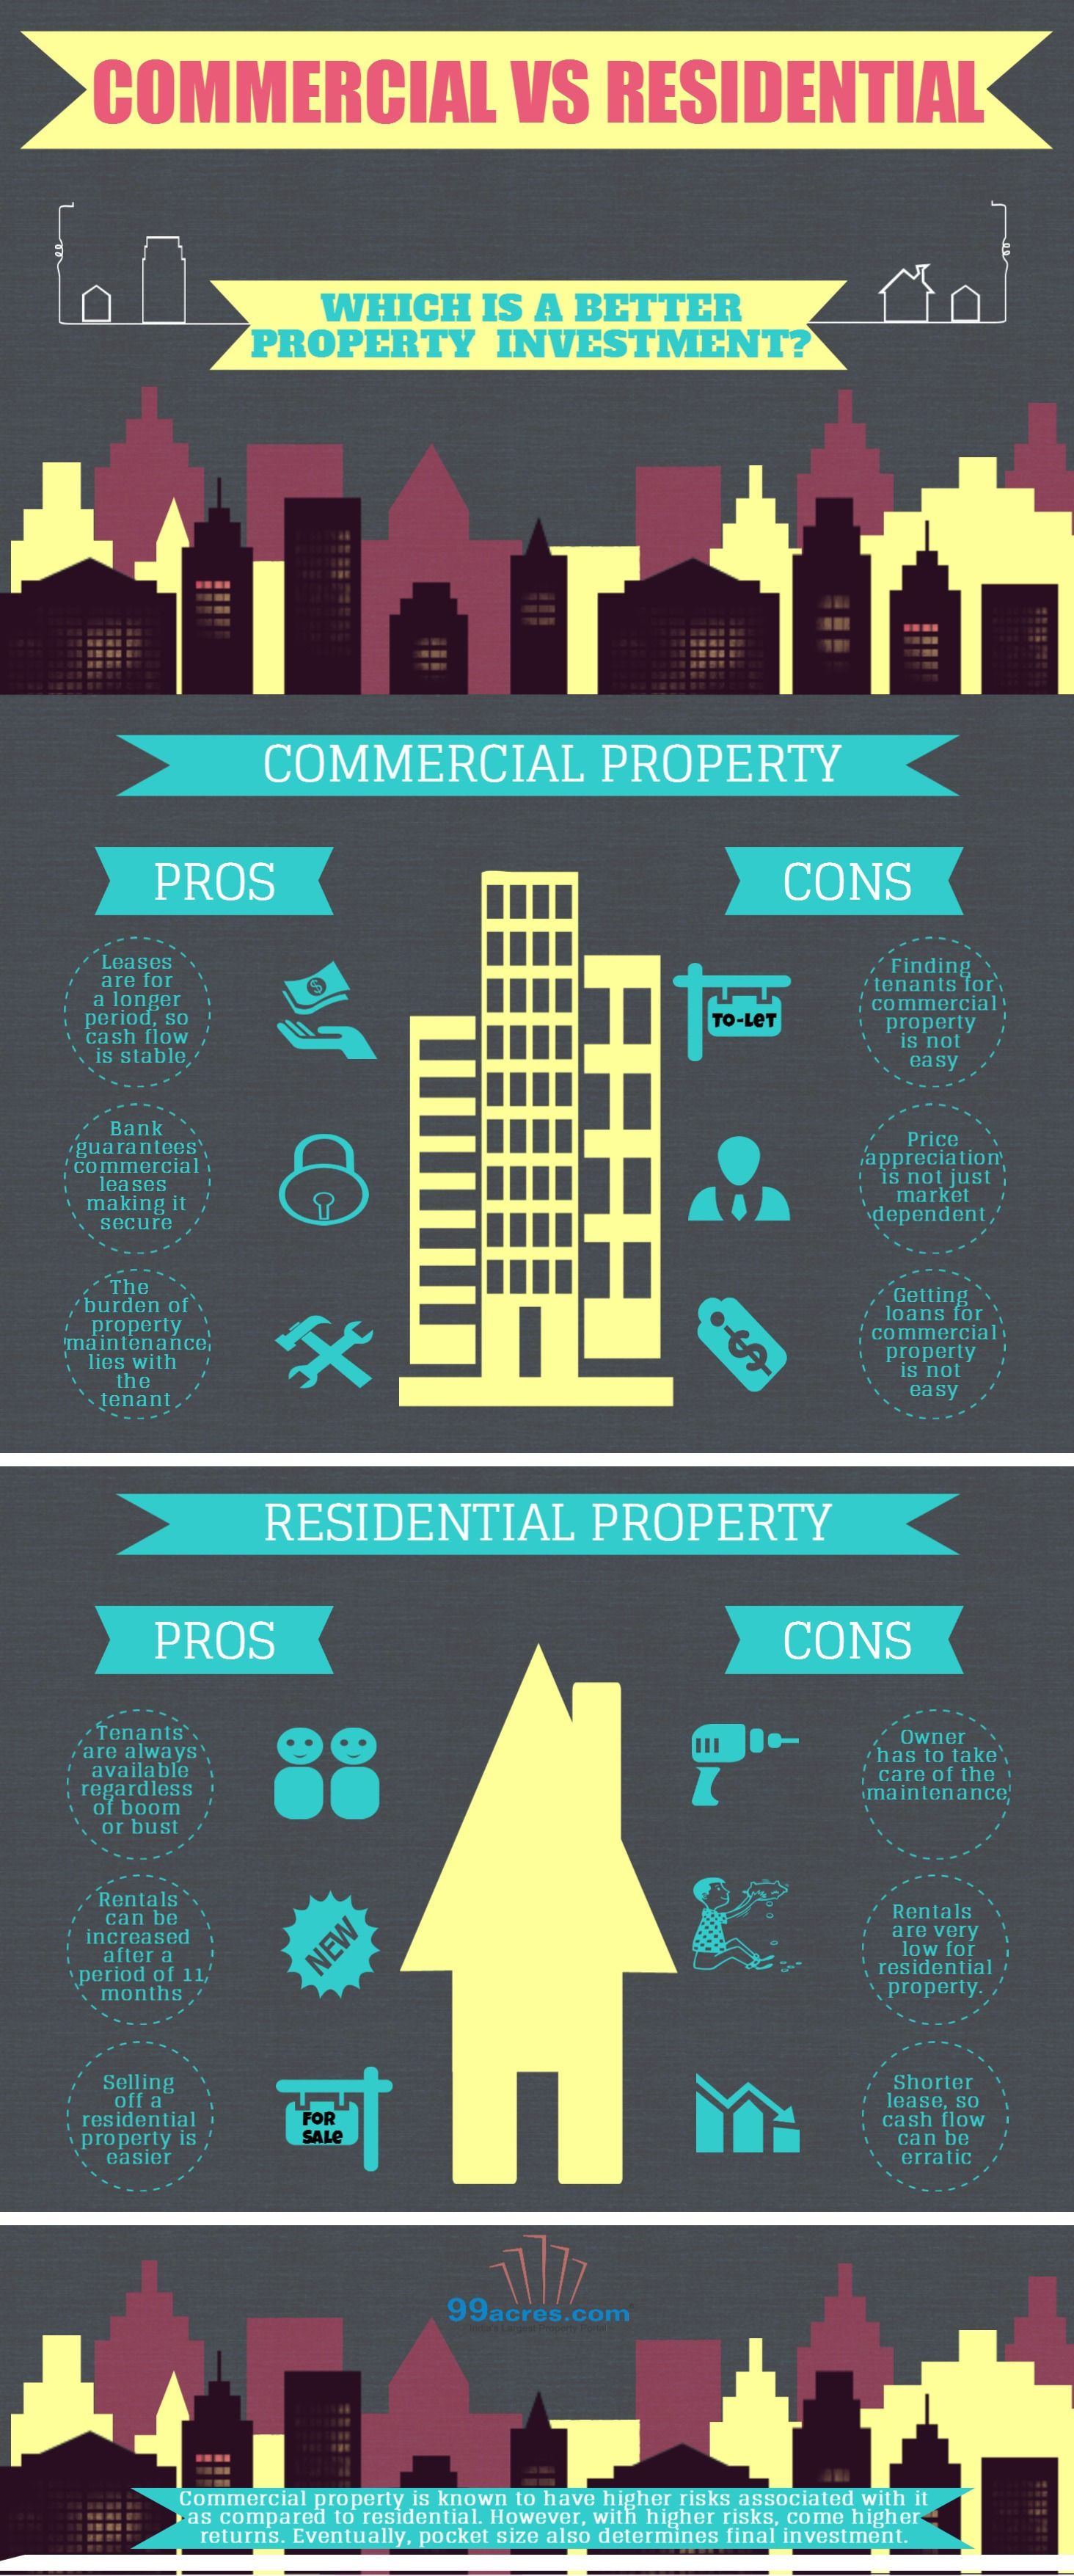 Residential Vs Commercial Property Realestate Infographic Commercial Real Estate Infographic Real Estate Infographic Commercial Real Estate